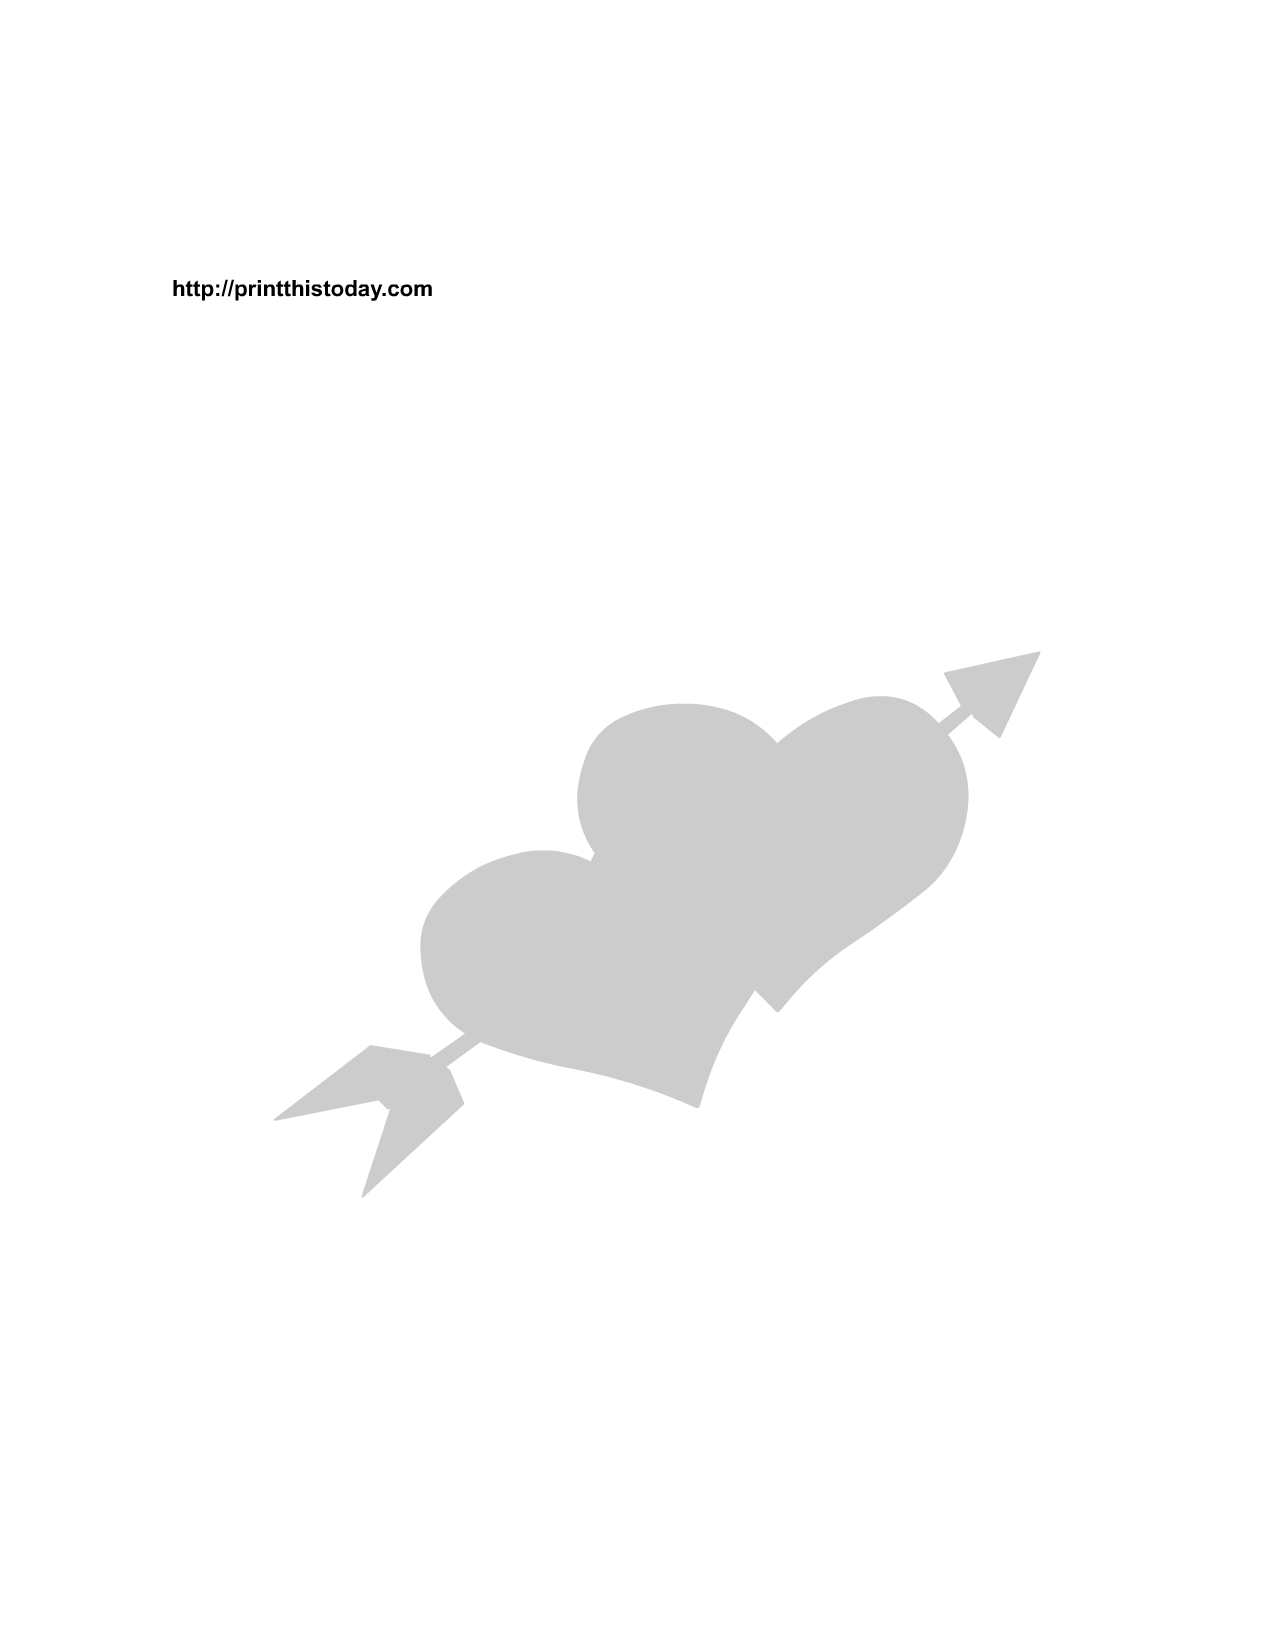 Arrow And Hearts Stencil | Print It | Stencils, Free Stencils, Heart - Free Printable Arrow Stencils